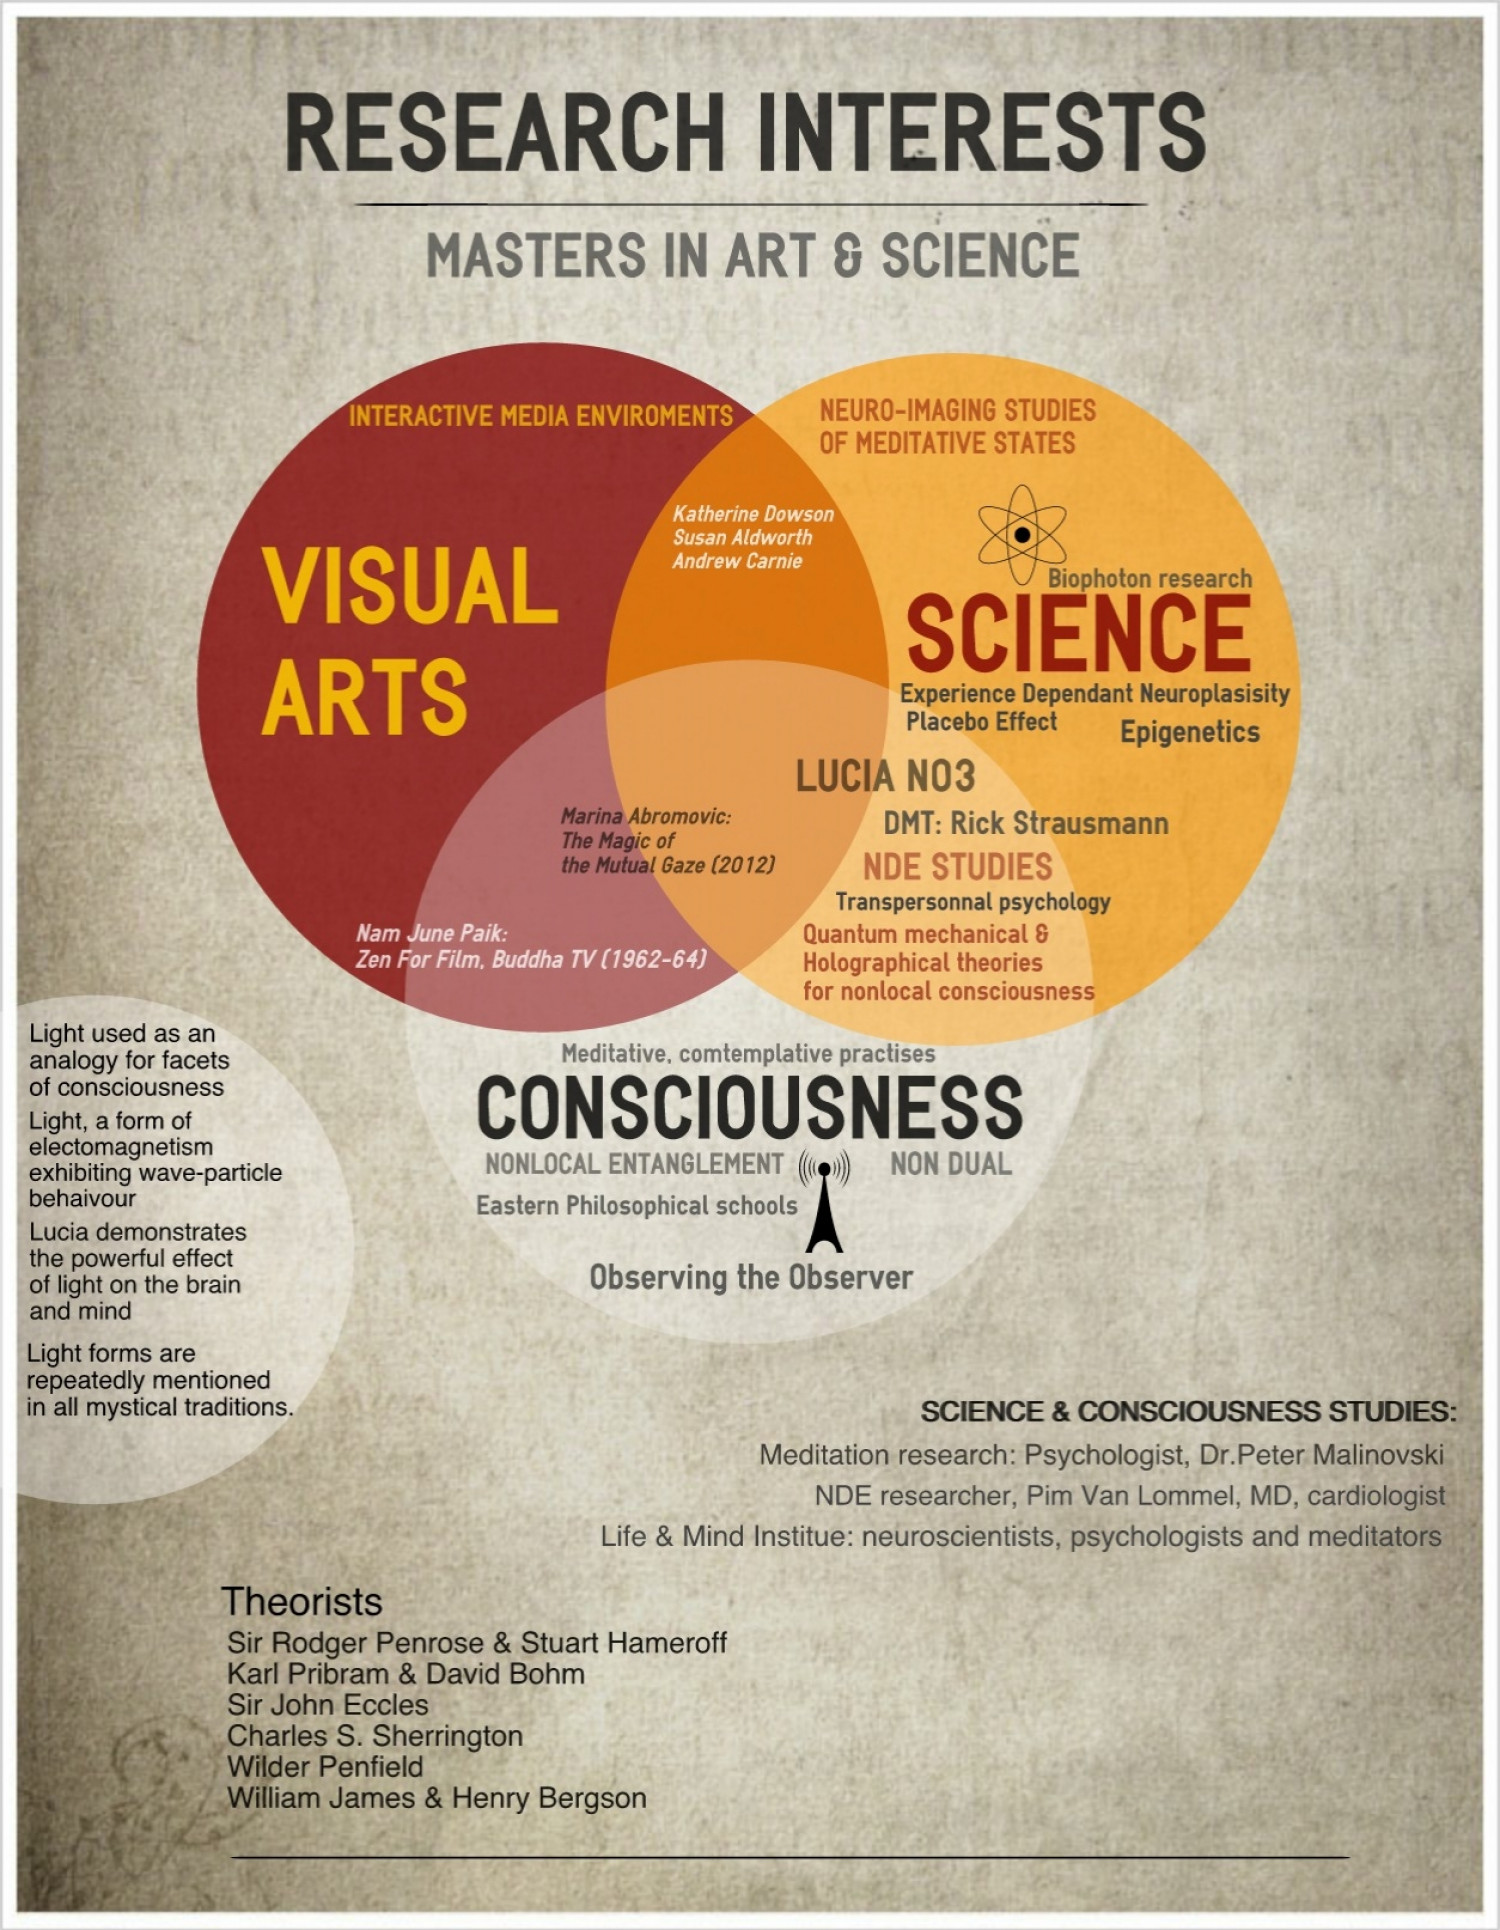 Art-Science-Consciousness Ven Diagram Infographic